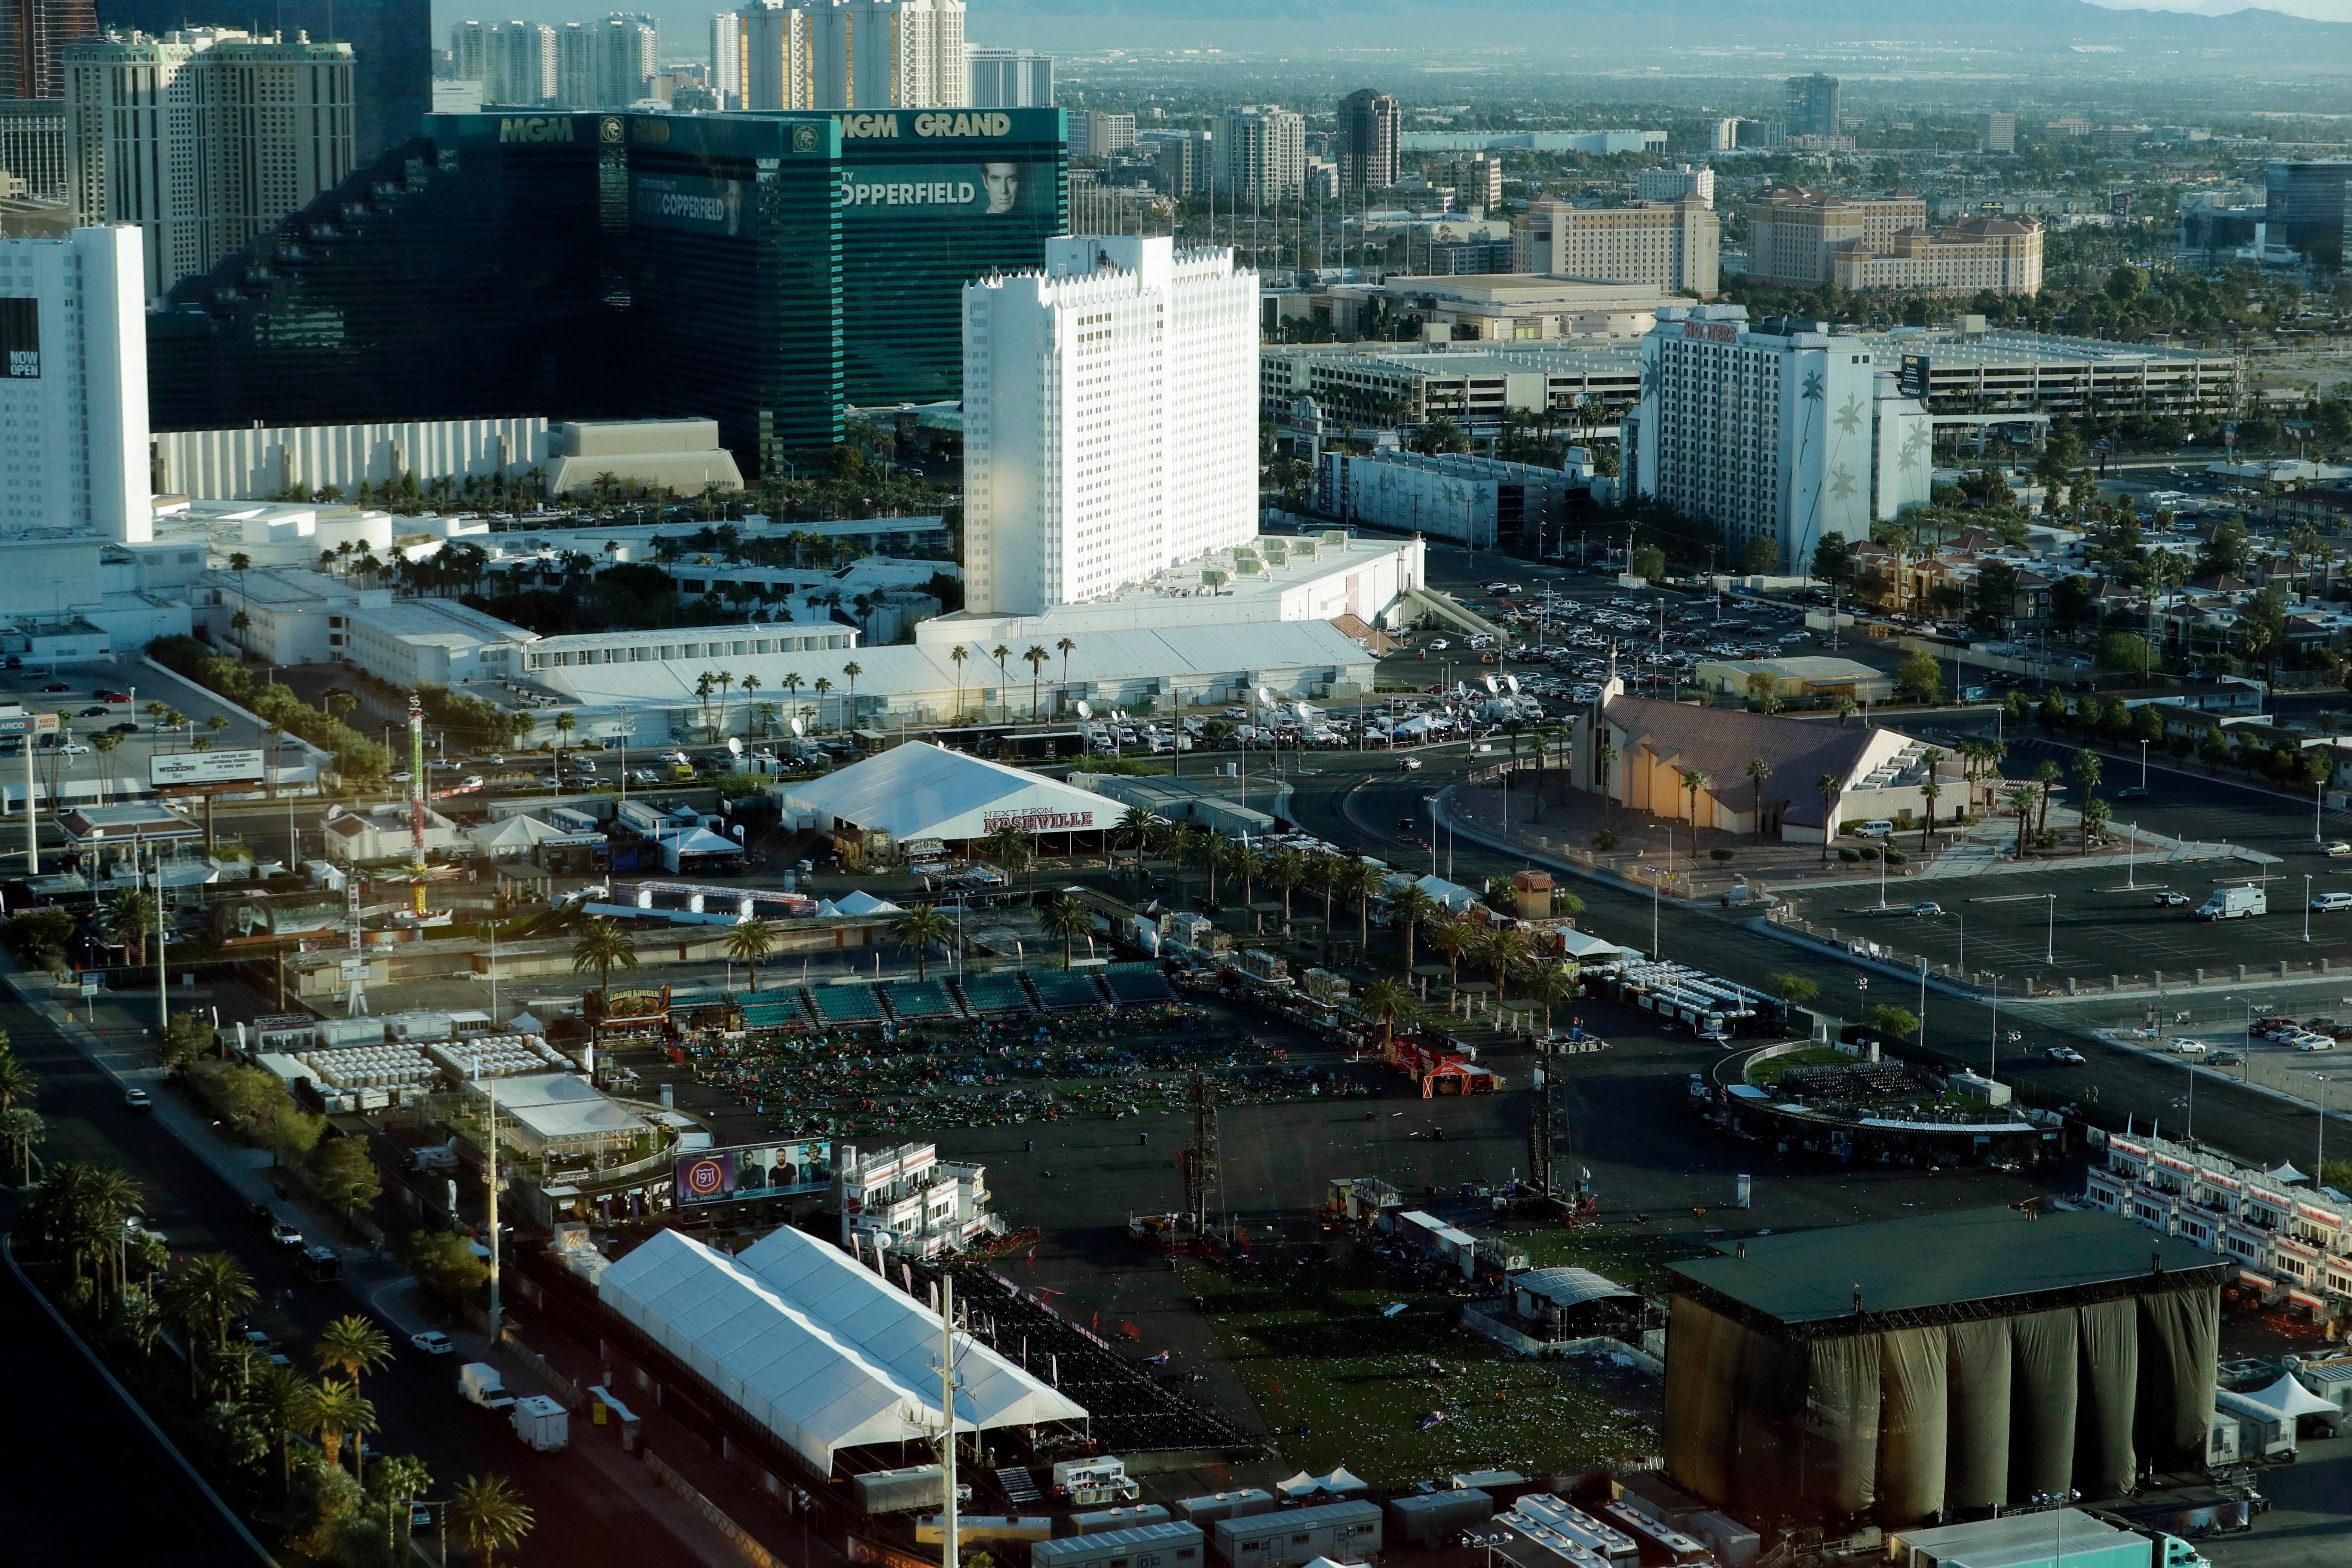 Debris litters a festival grounds across the street from the Mandalay Bay resort and casino Tuesday, Oct. 3, 2017, in Las Vegas. Authorities said Stephen Craig Paddock broke windows on the casino and began firing with a cache of weapons, killing dozens and injuring hundreds at a music festival at the grounds.  (AP Photo/Marcio Jose Sanchez)